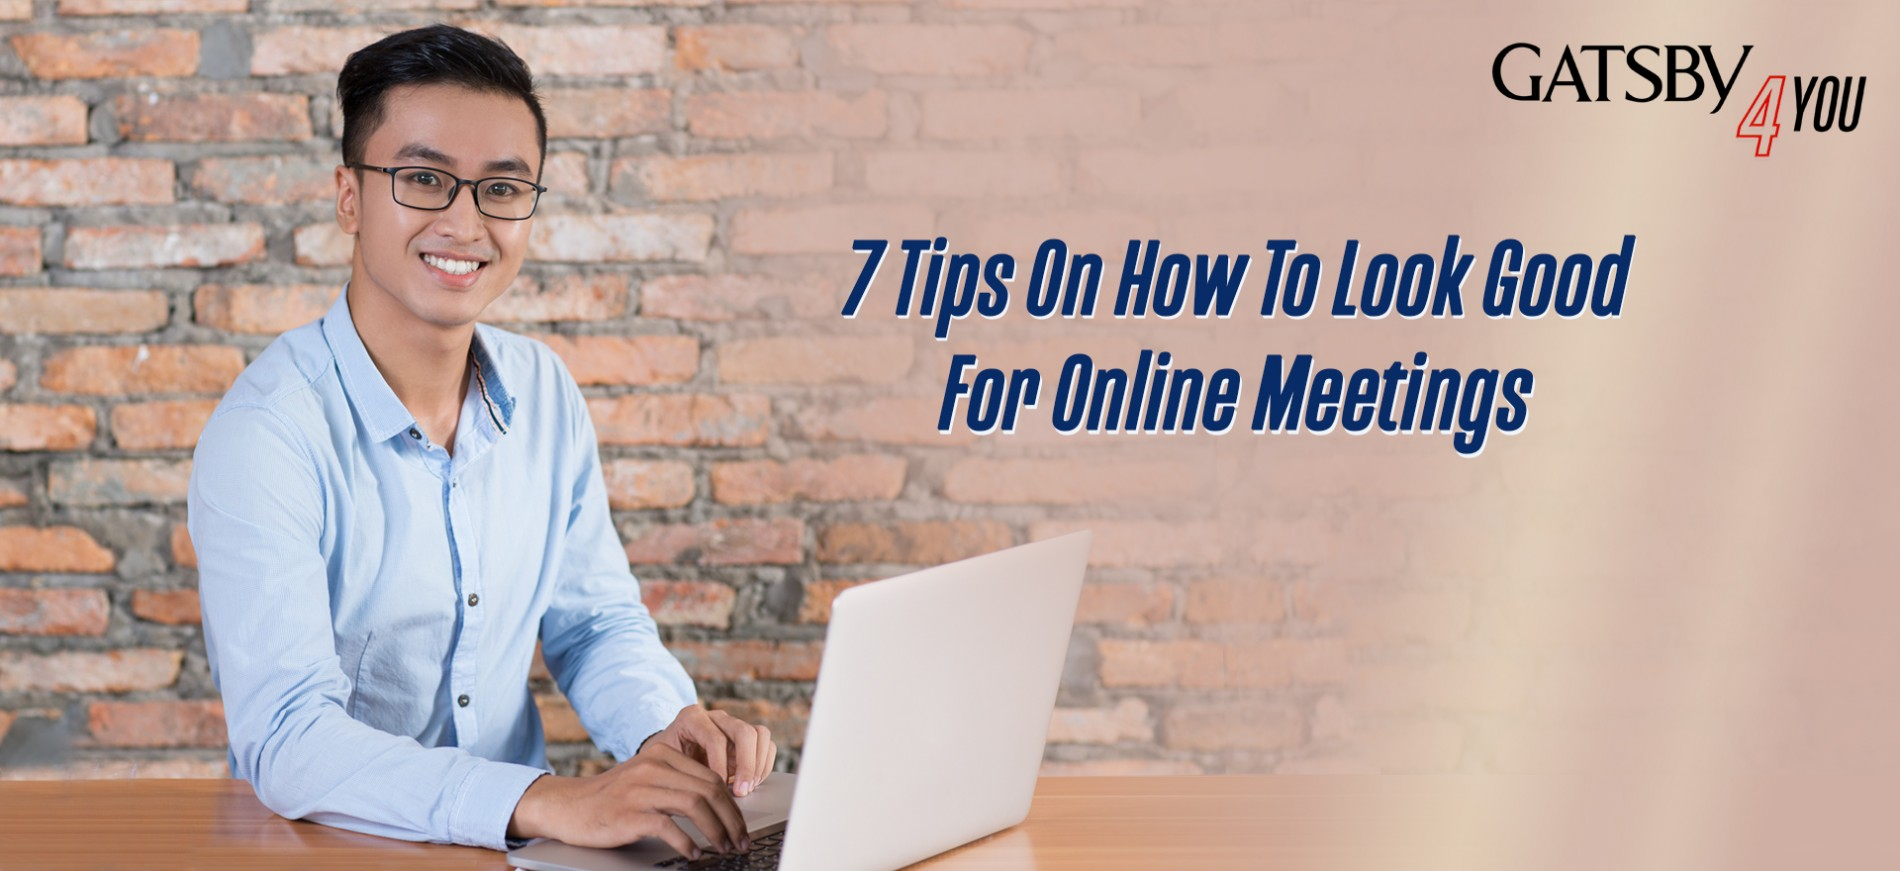 GATSBY Philippines 7 Tips on How to Look Good from for an Online Meeting_